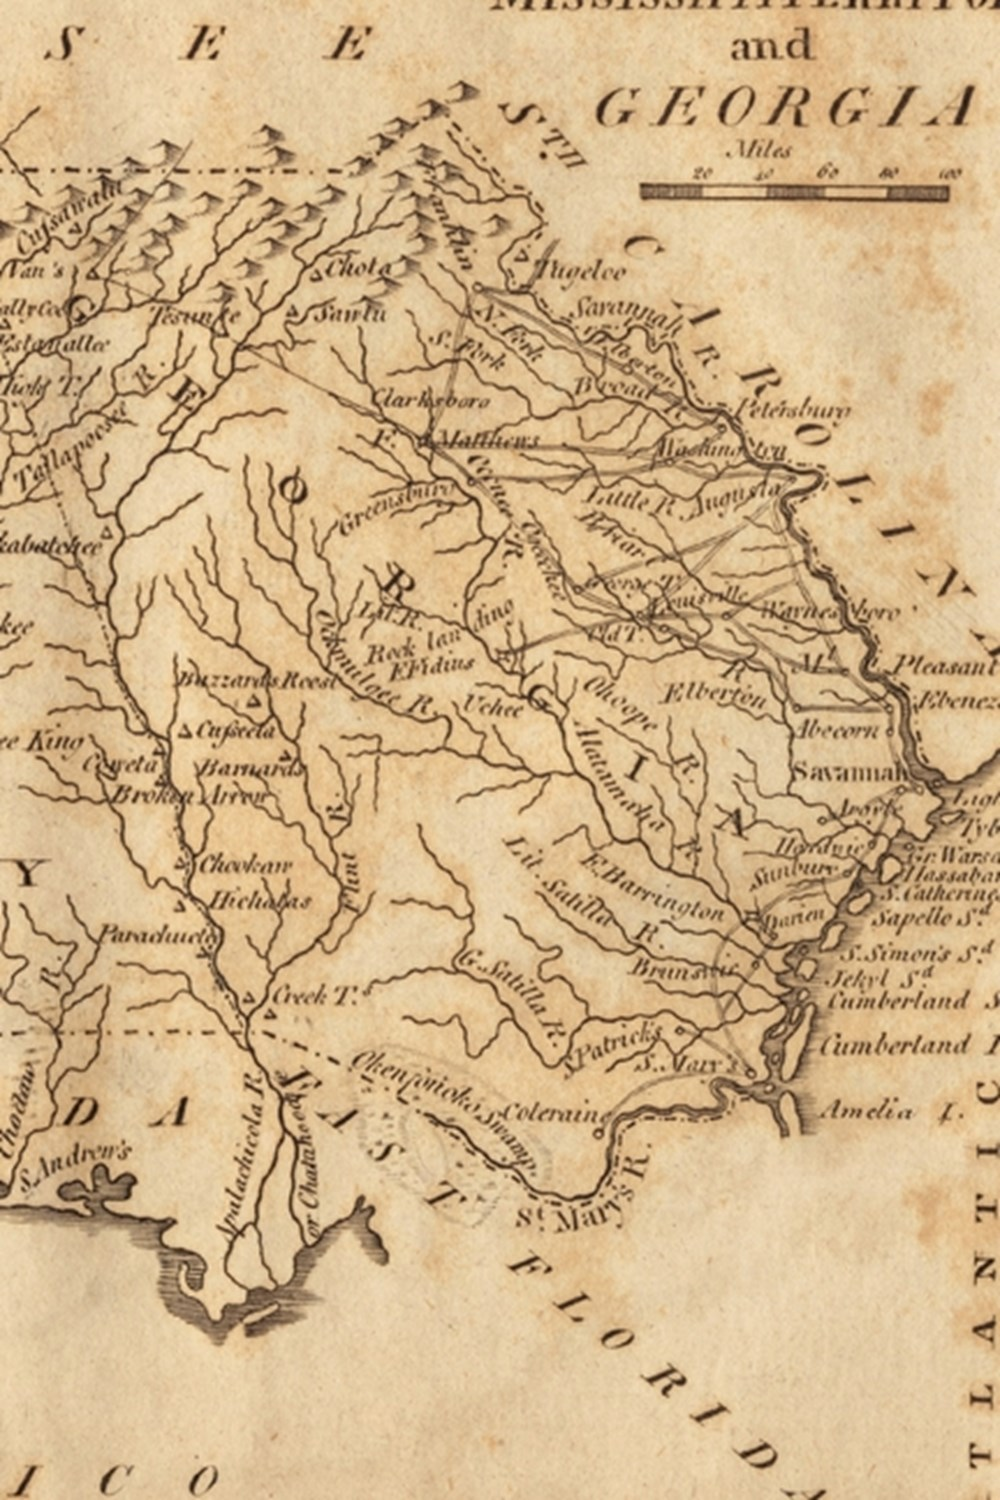 1806 Map of Mississippi Territory and Georgia - A Poetose Notebook / Journal / Diary (50 pages/25 sh